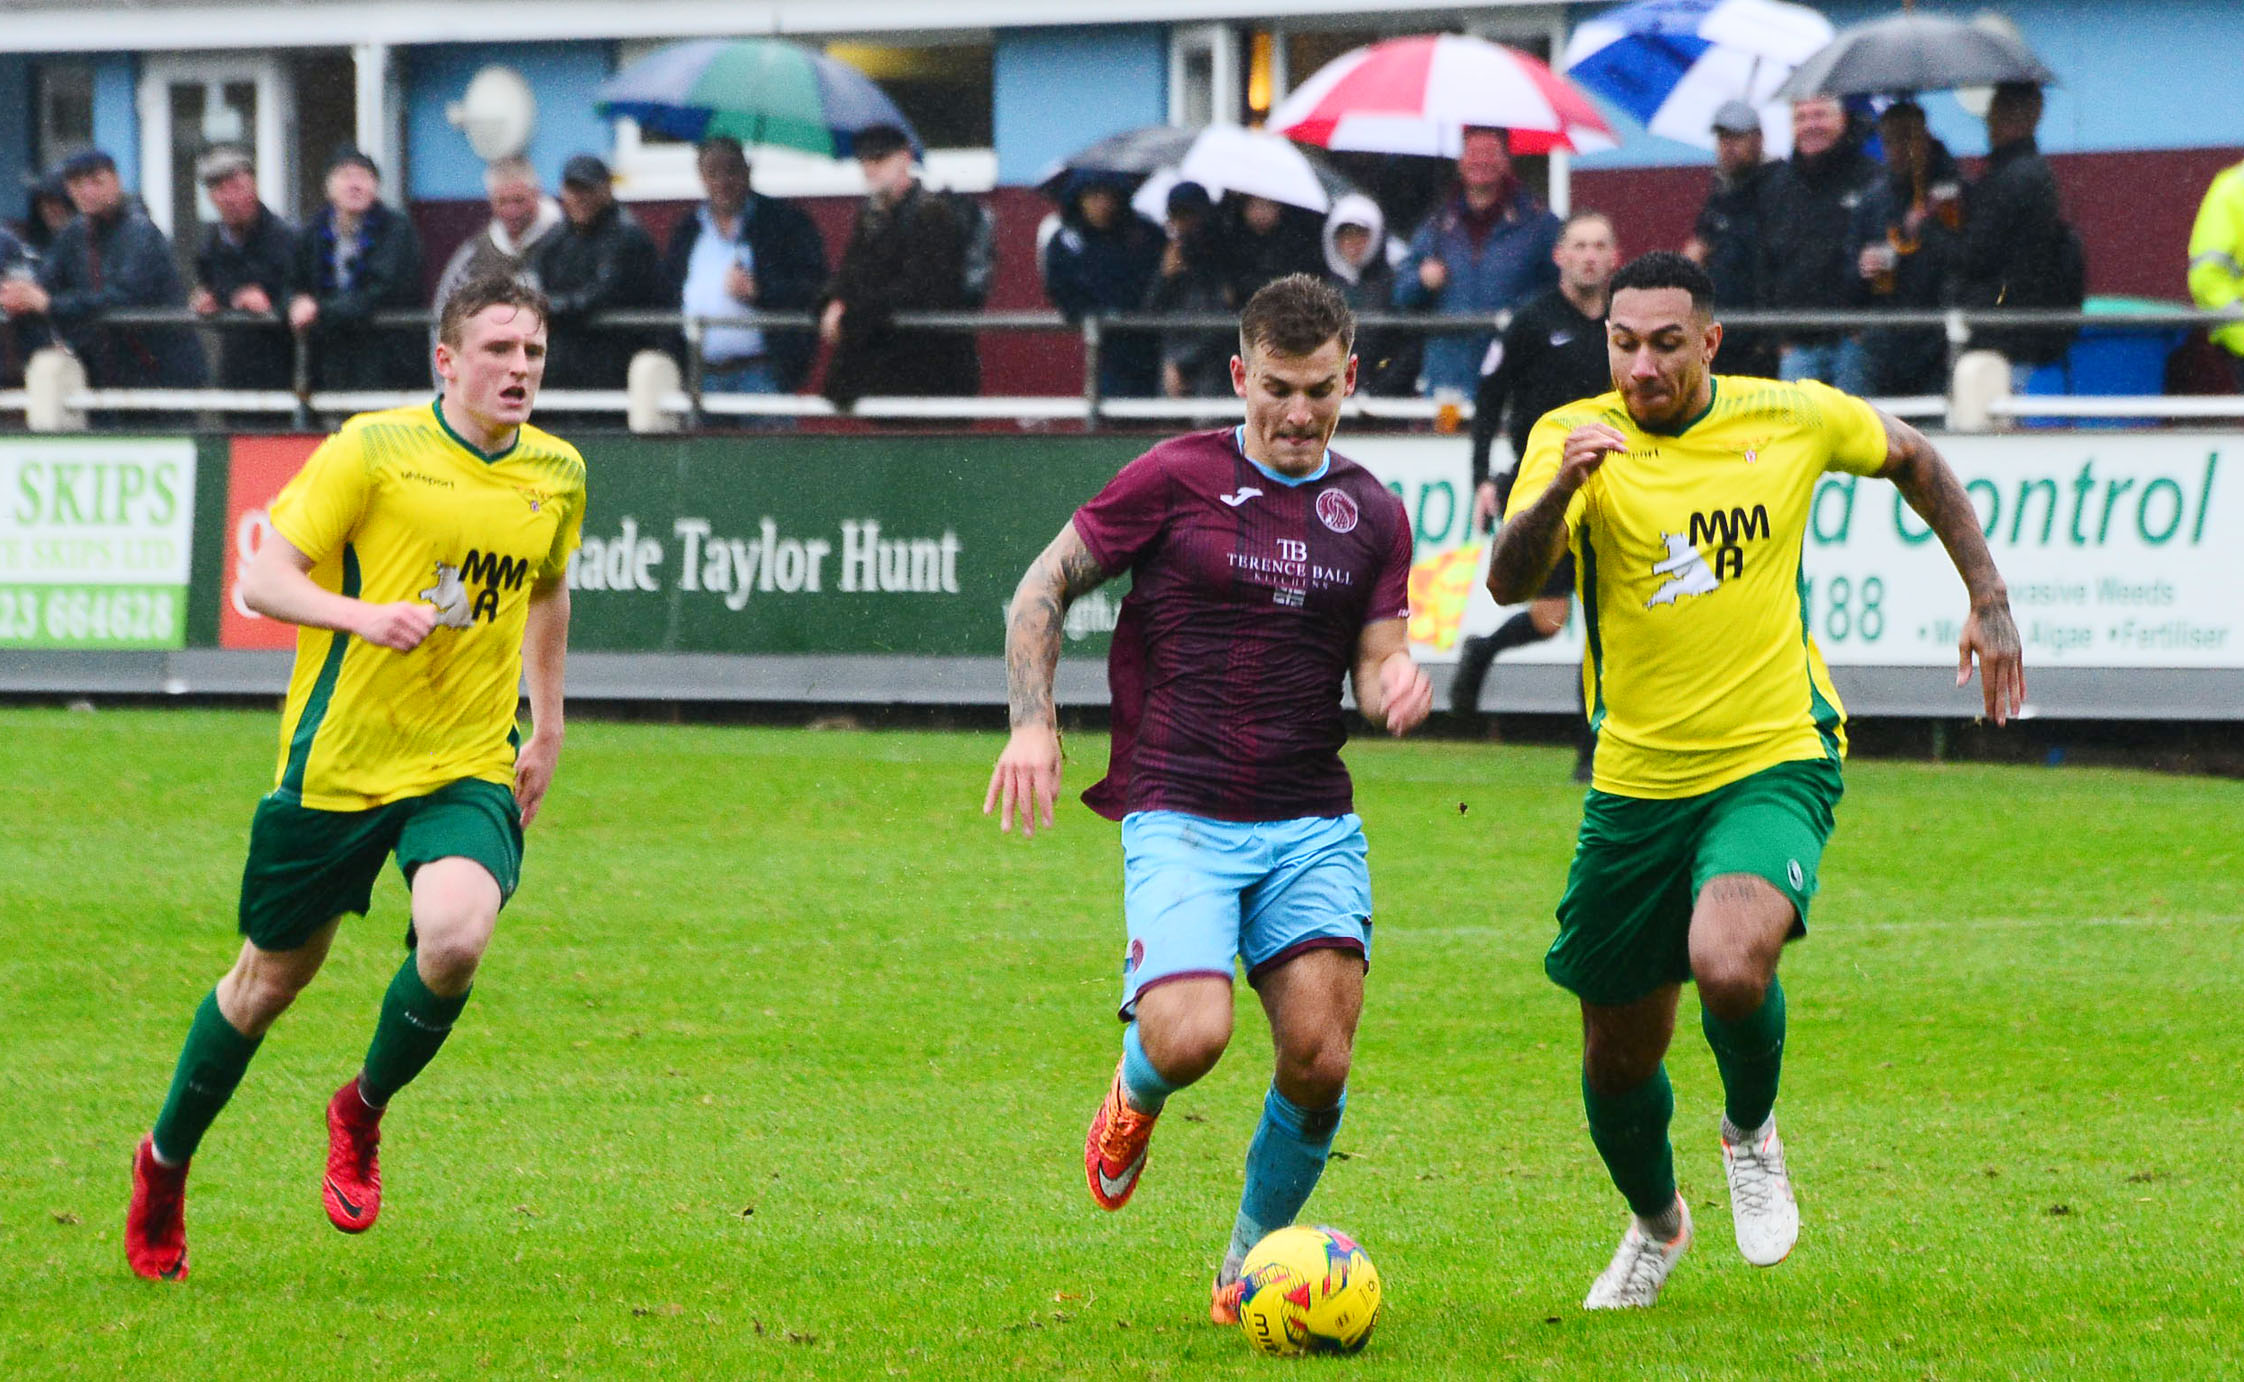 AT THE DOUBLE: Andrew Neal (pictured centre) scored twice for Taunton Town at Wincanton.